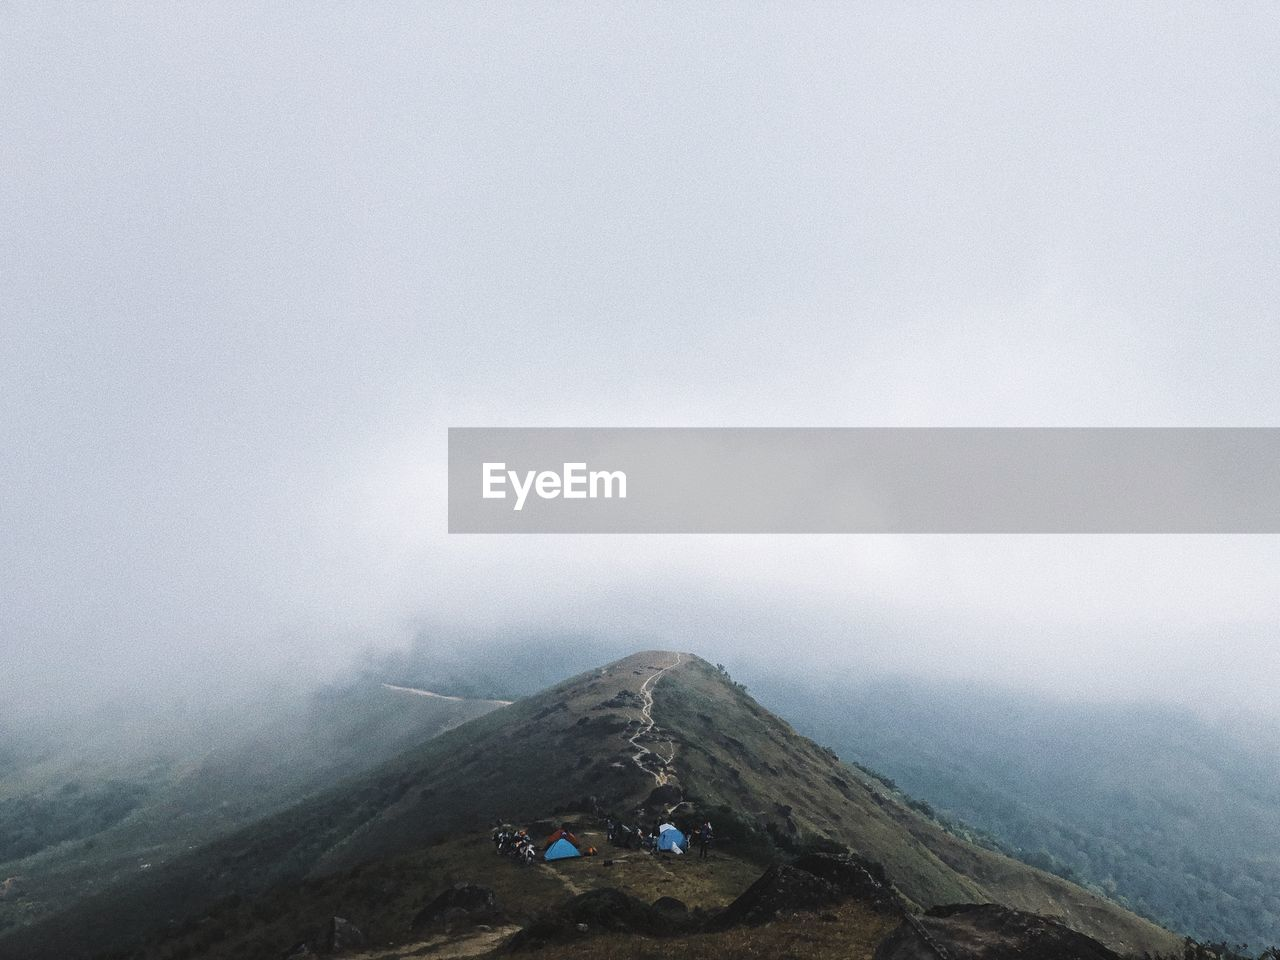 fog, mountain, scenics - nature, sky, tranquil scene, beauty in nature, environment, tranquility, nature, non-urban scene, day, leisure activity, landscape, copy space, idyllic, cold temperature, real people, lifestyles, tourism, outdoors